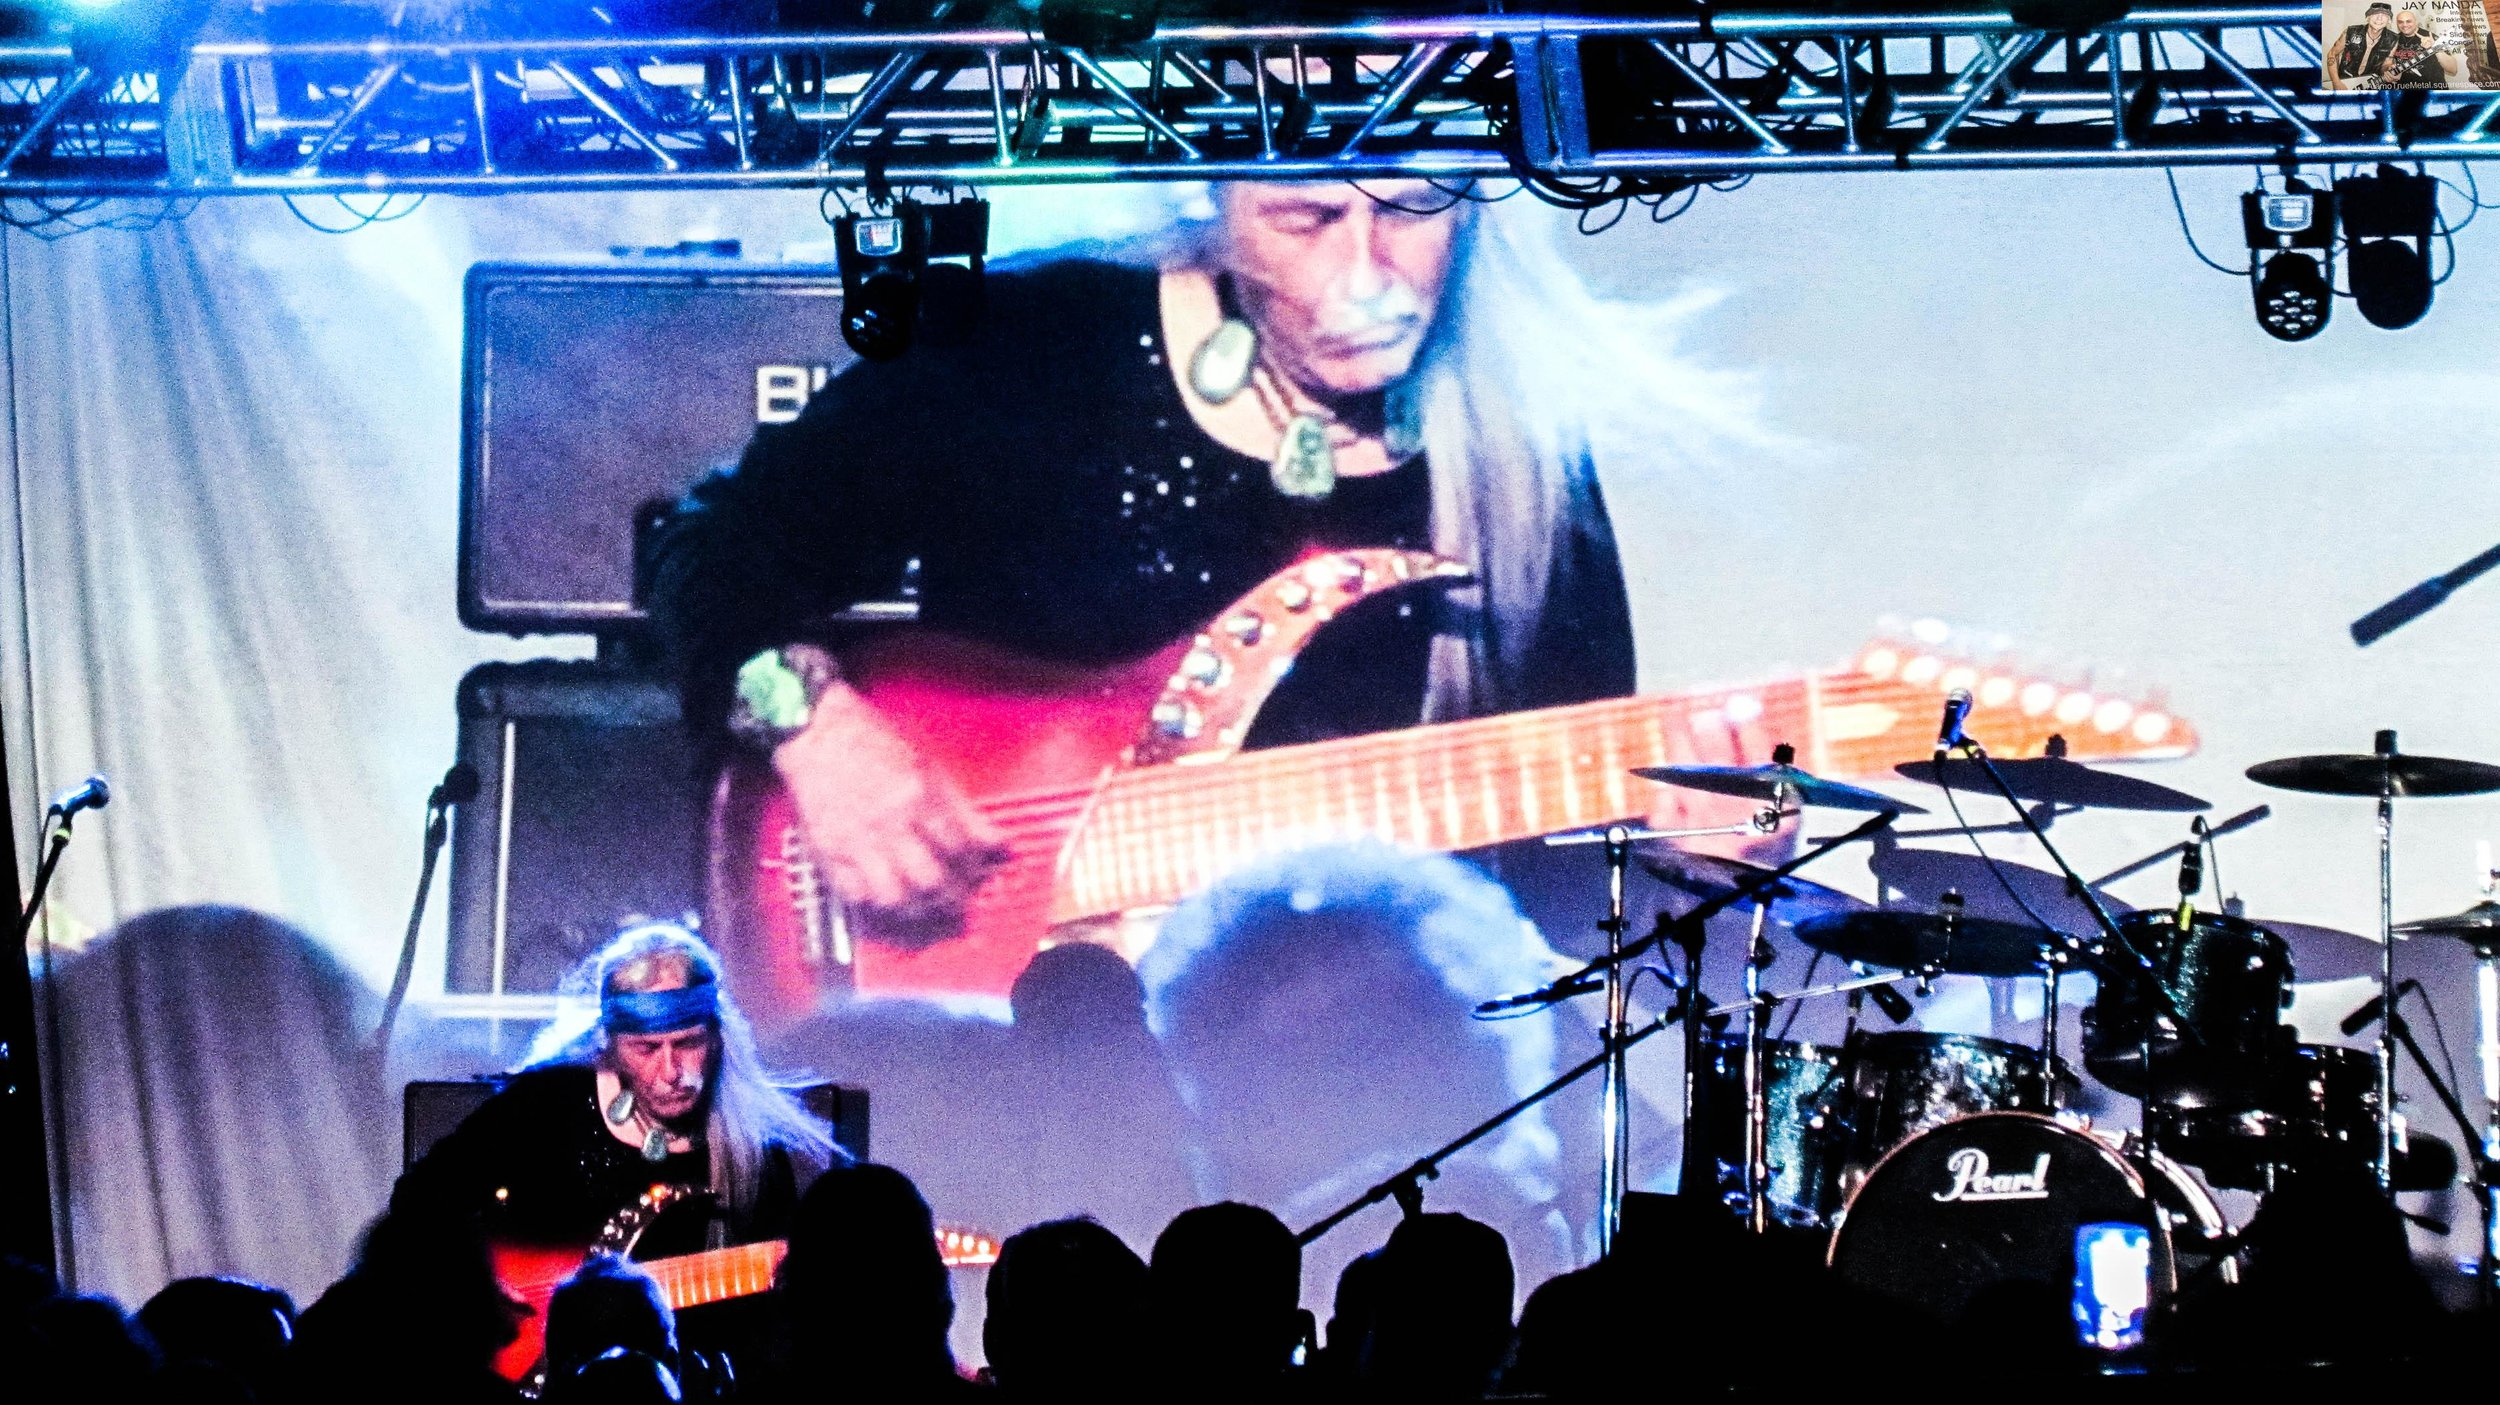 """Roth asked the crowd for silence as he went solo for """"Passage to India,"""" saying, """"I don't mind if you talk during the heavy stuff"""" but that this tune was quieter than normal."""